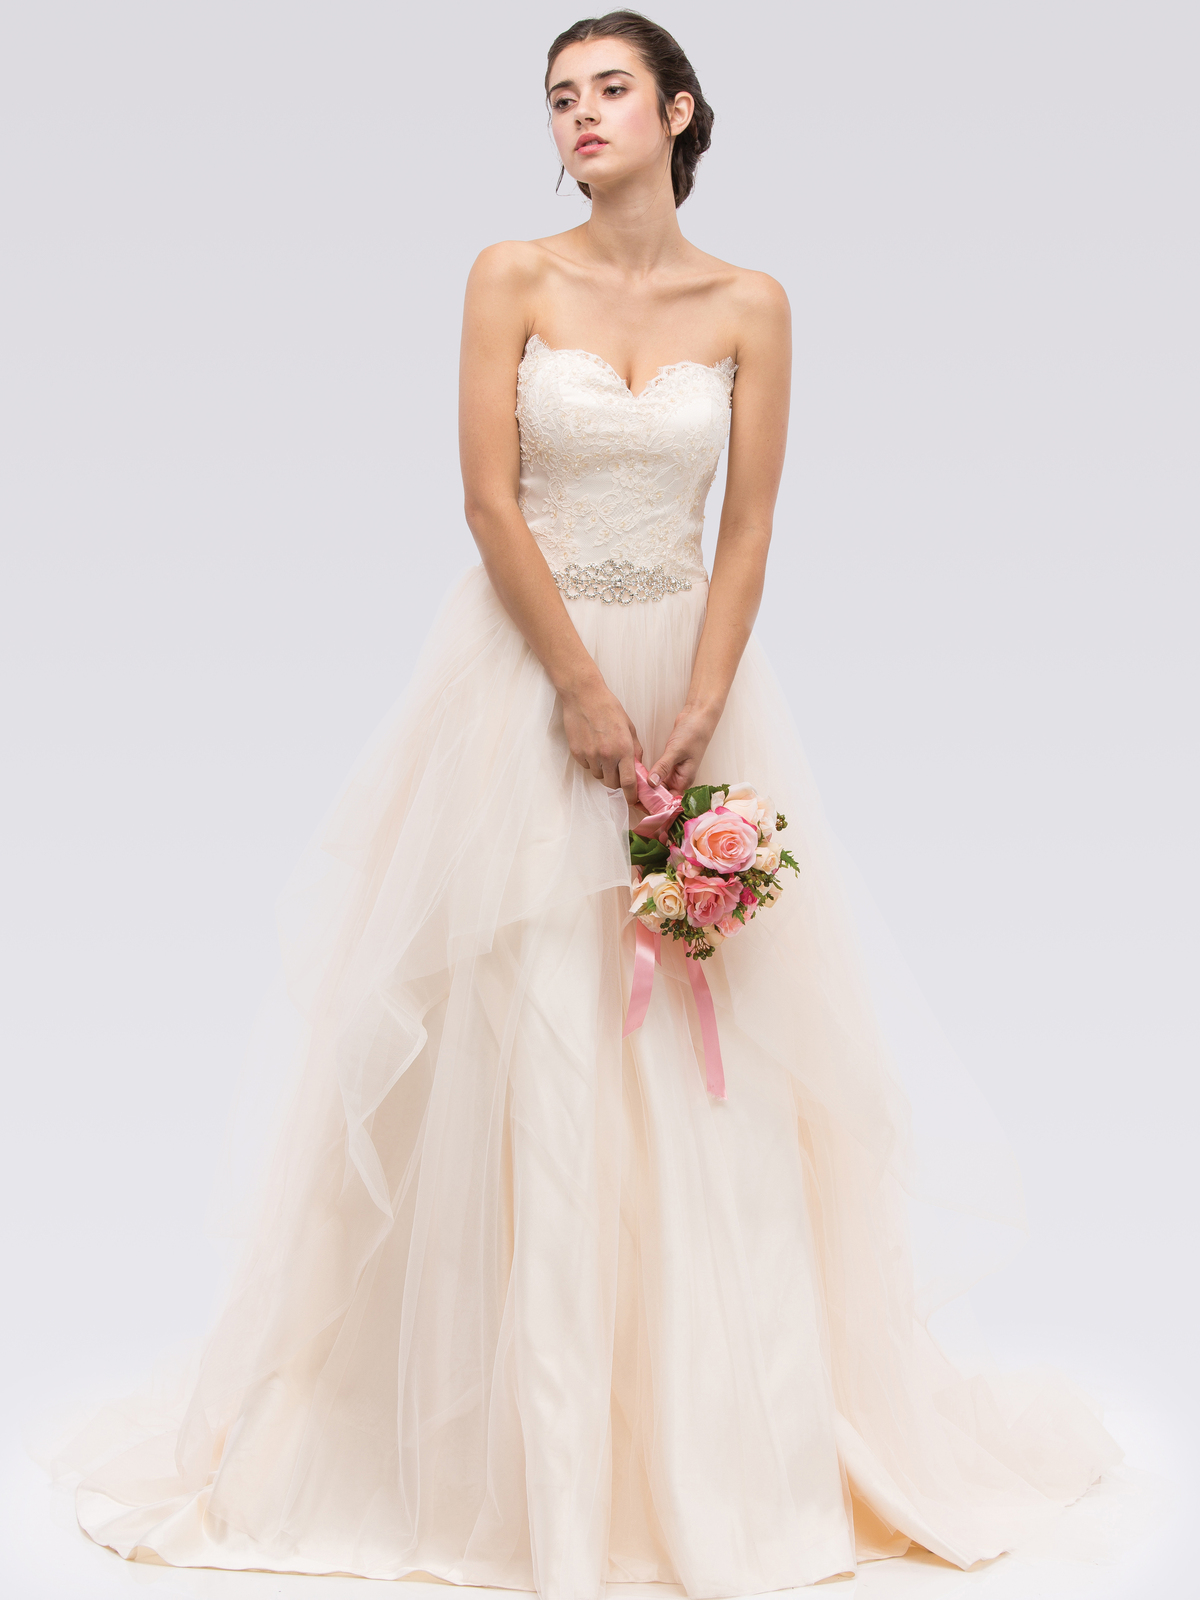 Strapless Sweetheart Destination Wedding Gown | Sung Boutique L.A.